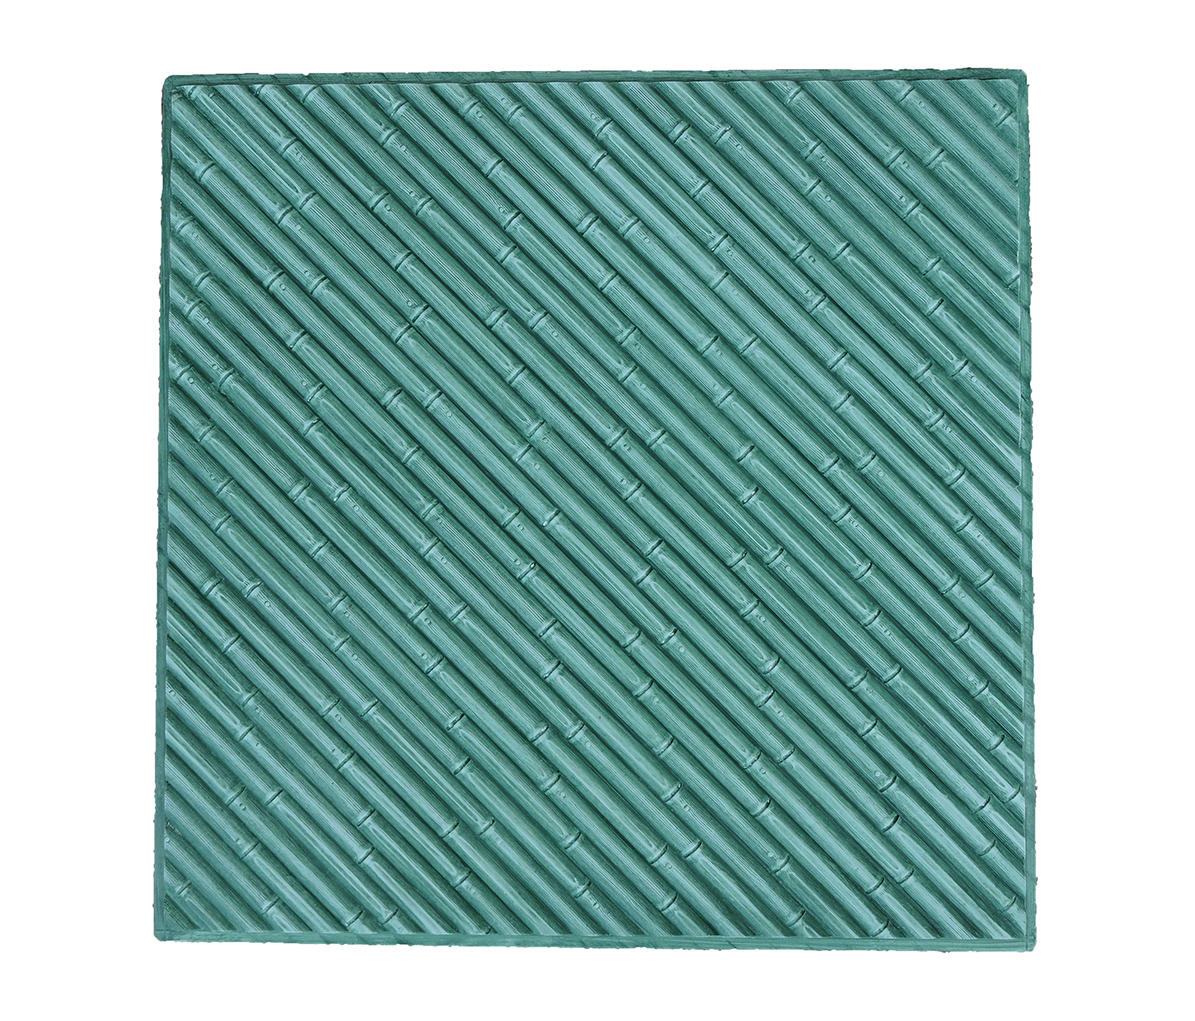 Bamboo 1 Ceiling Tile Mineral Composite Panels From Above View Inc